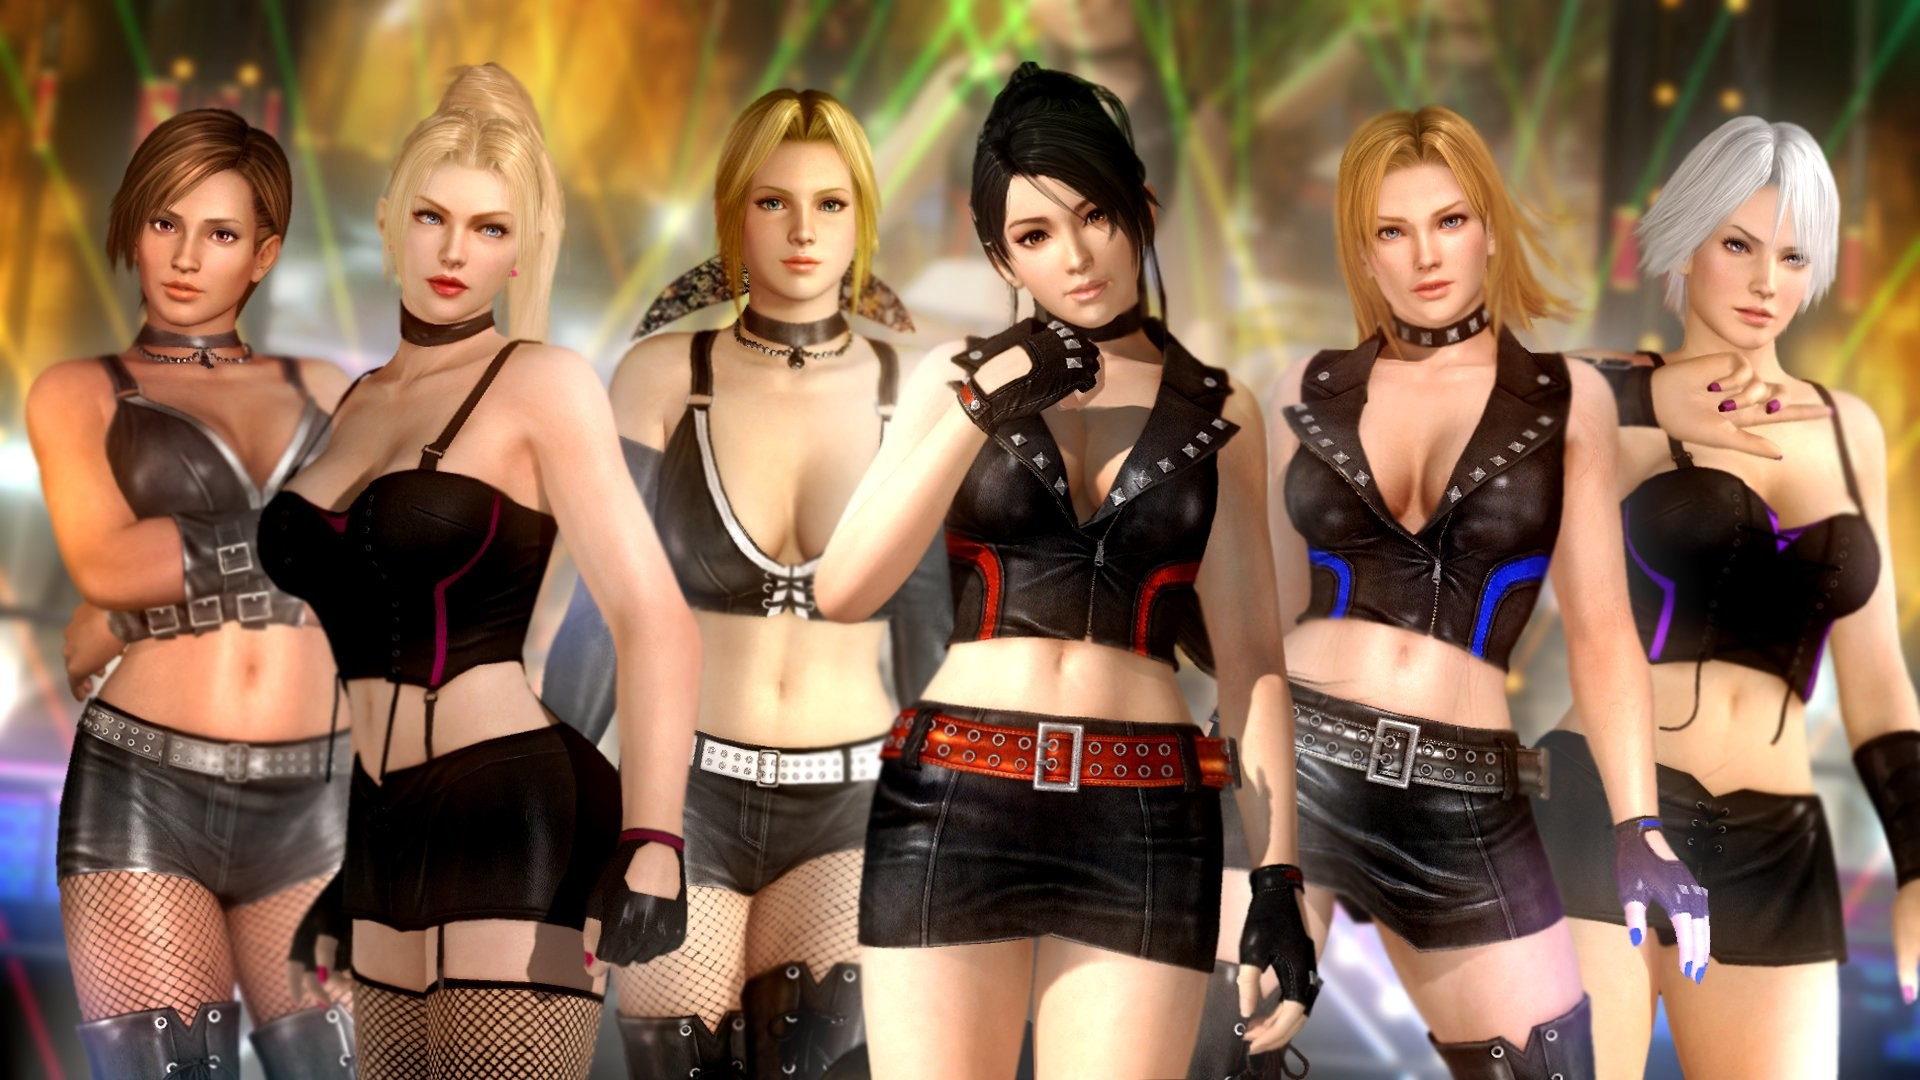 1920x1080 Dead or Alive 5 Group HD Wallpaper